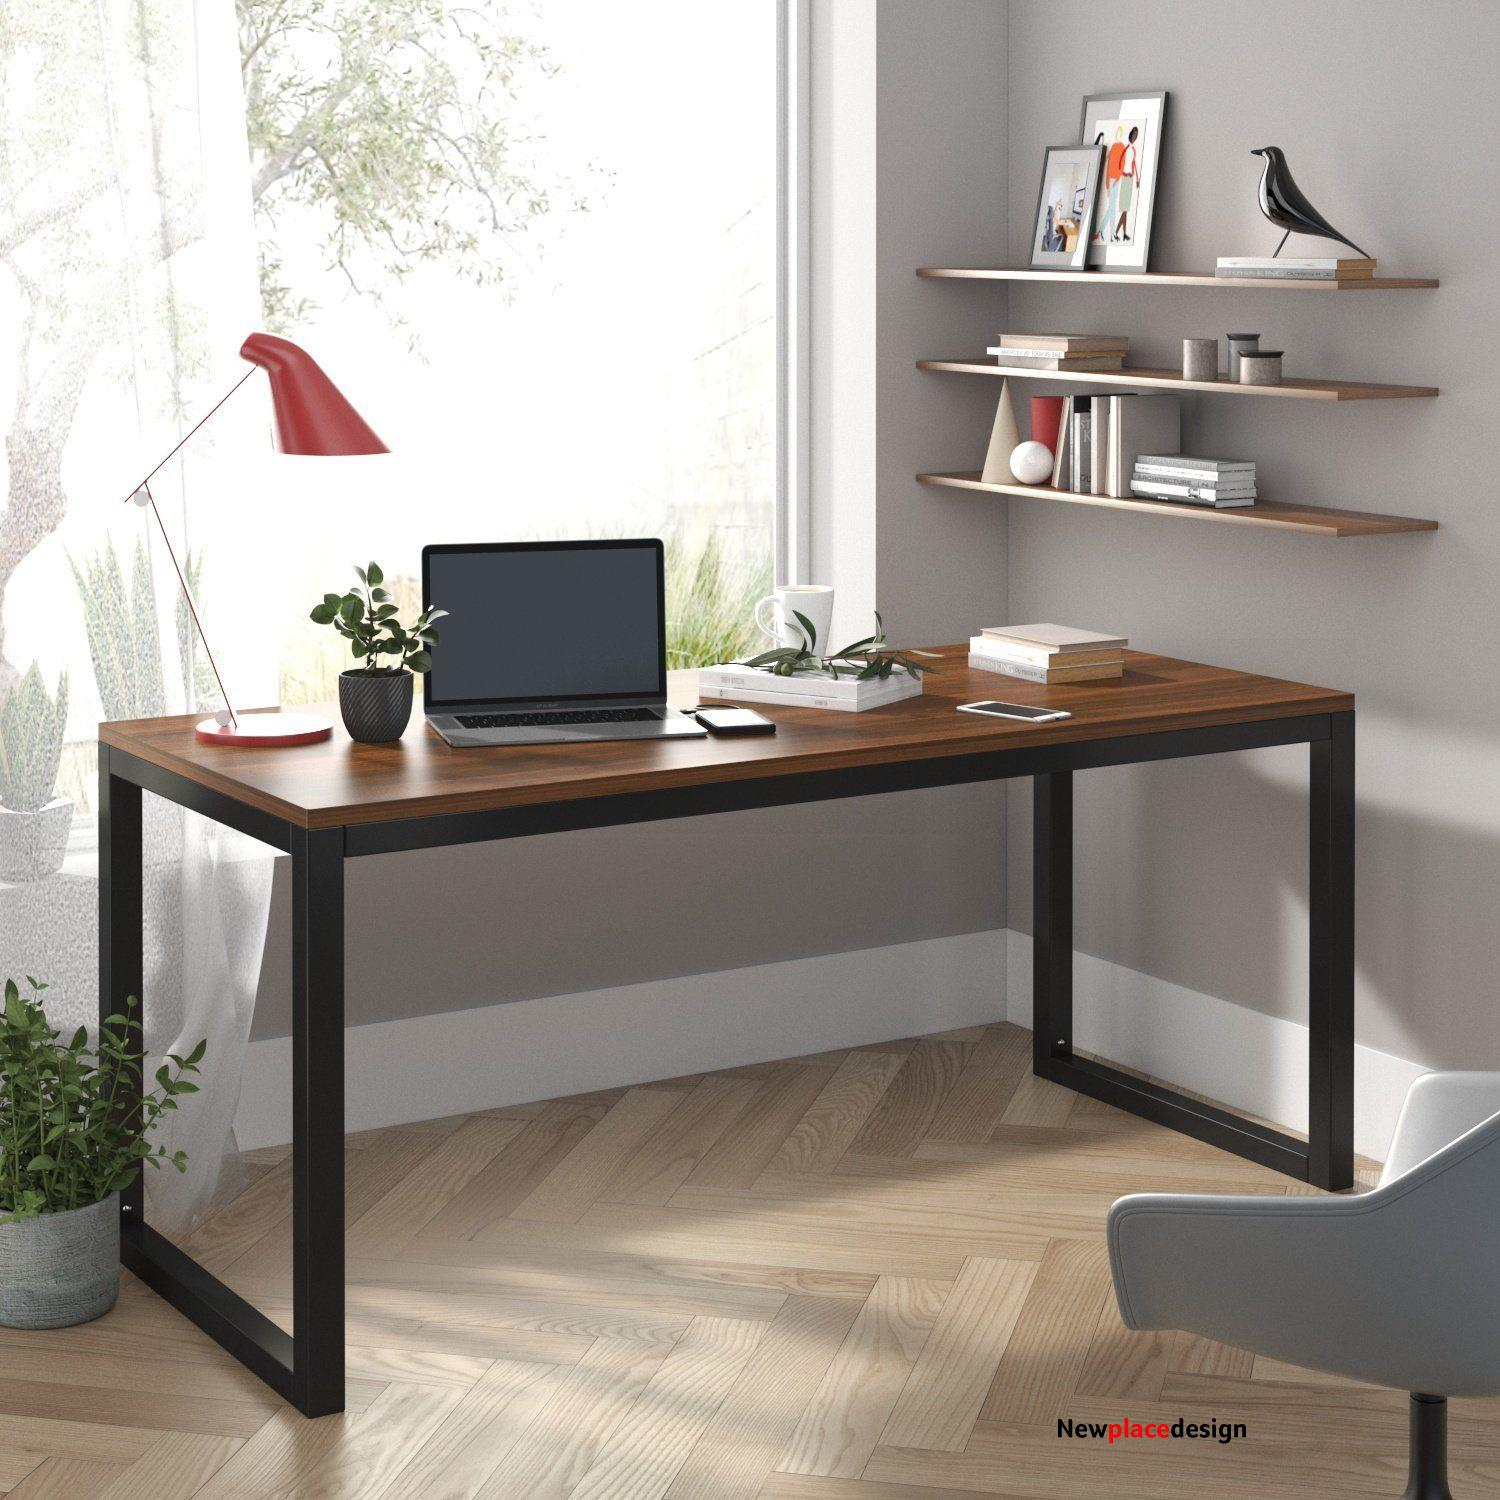 Computer Desk, Modern Writing Gaming Desk for Home Office, Small Wood Table Top Workstation, Rustic Simple Industrial Design - 55'' / Brown & Black